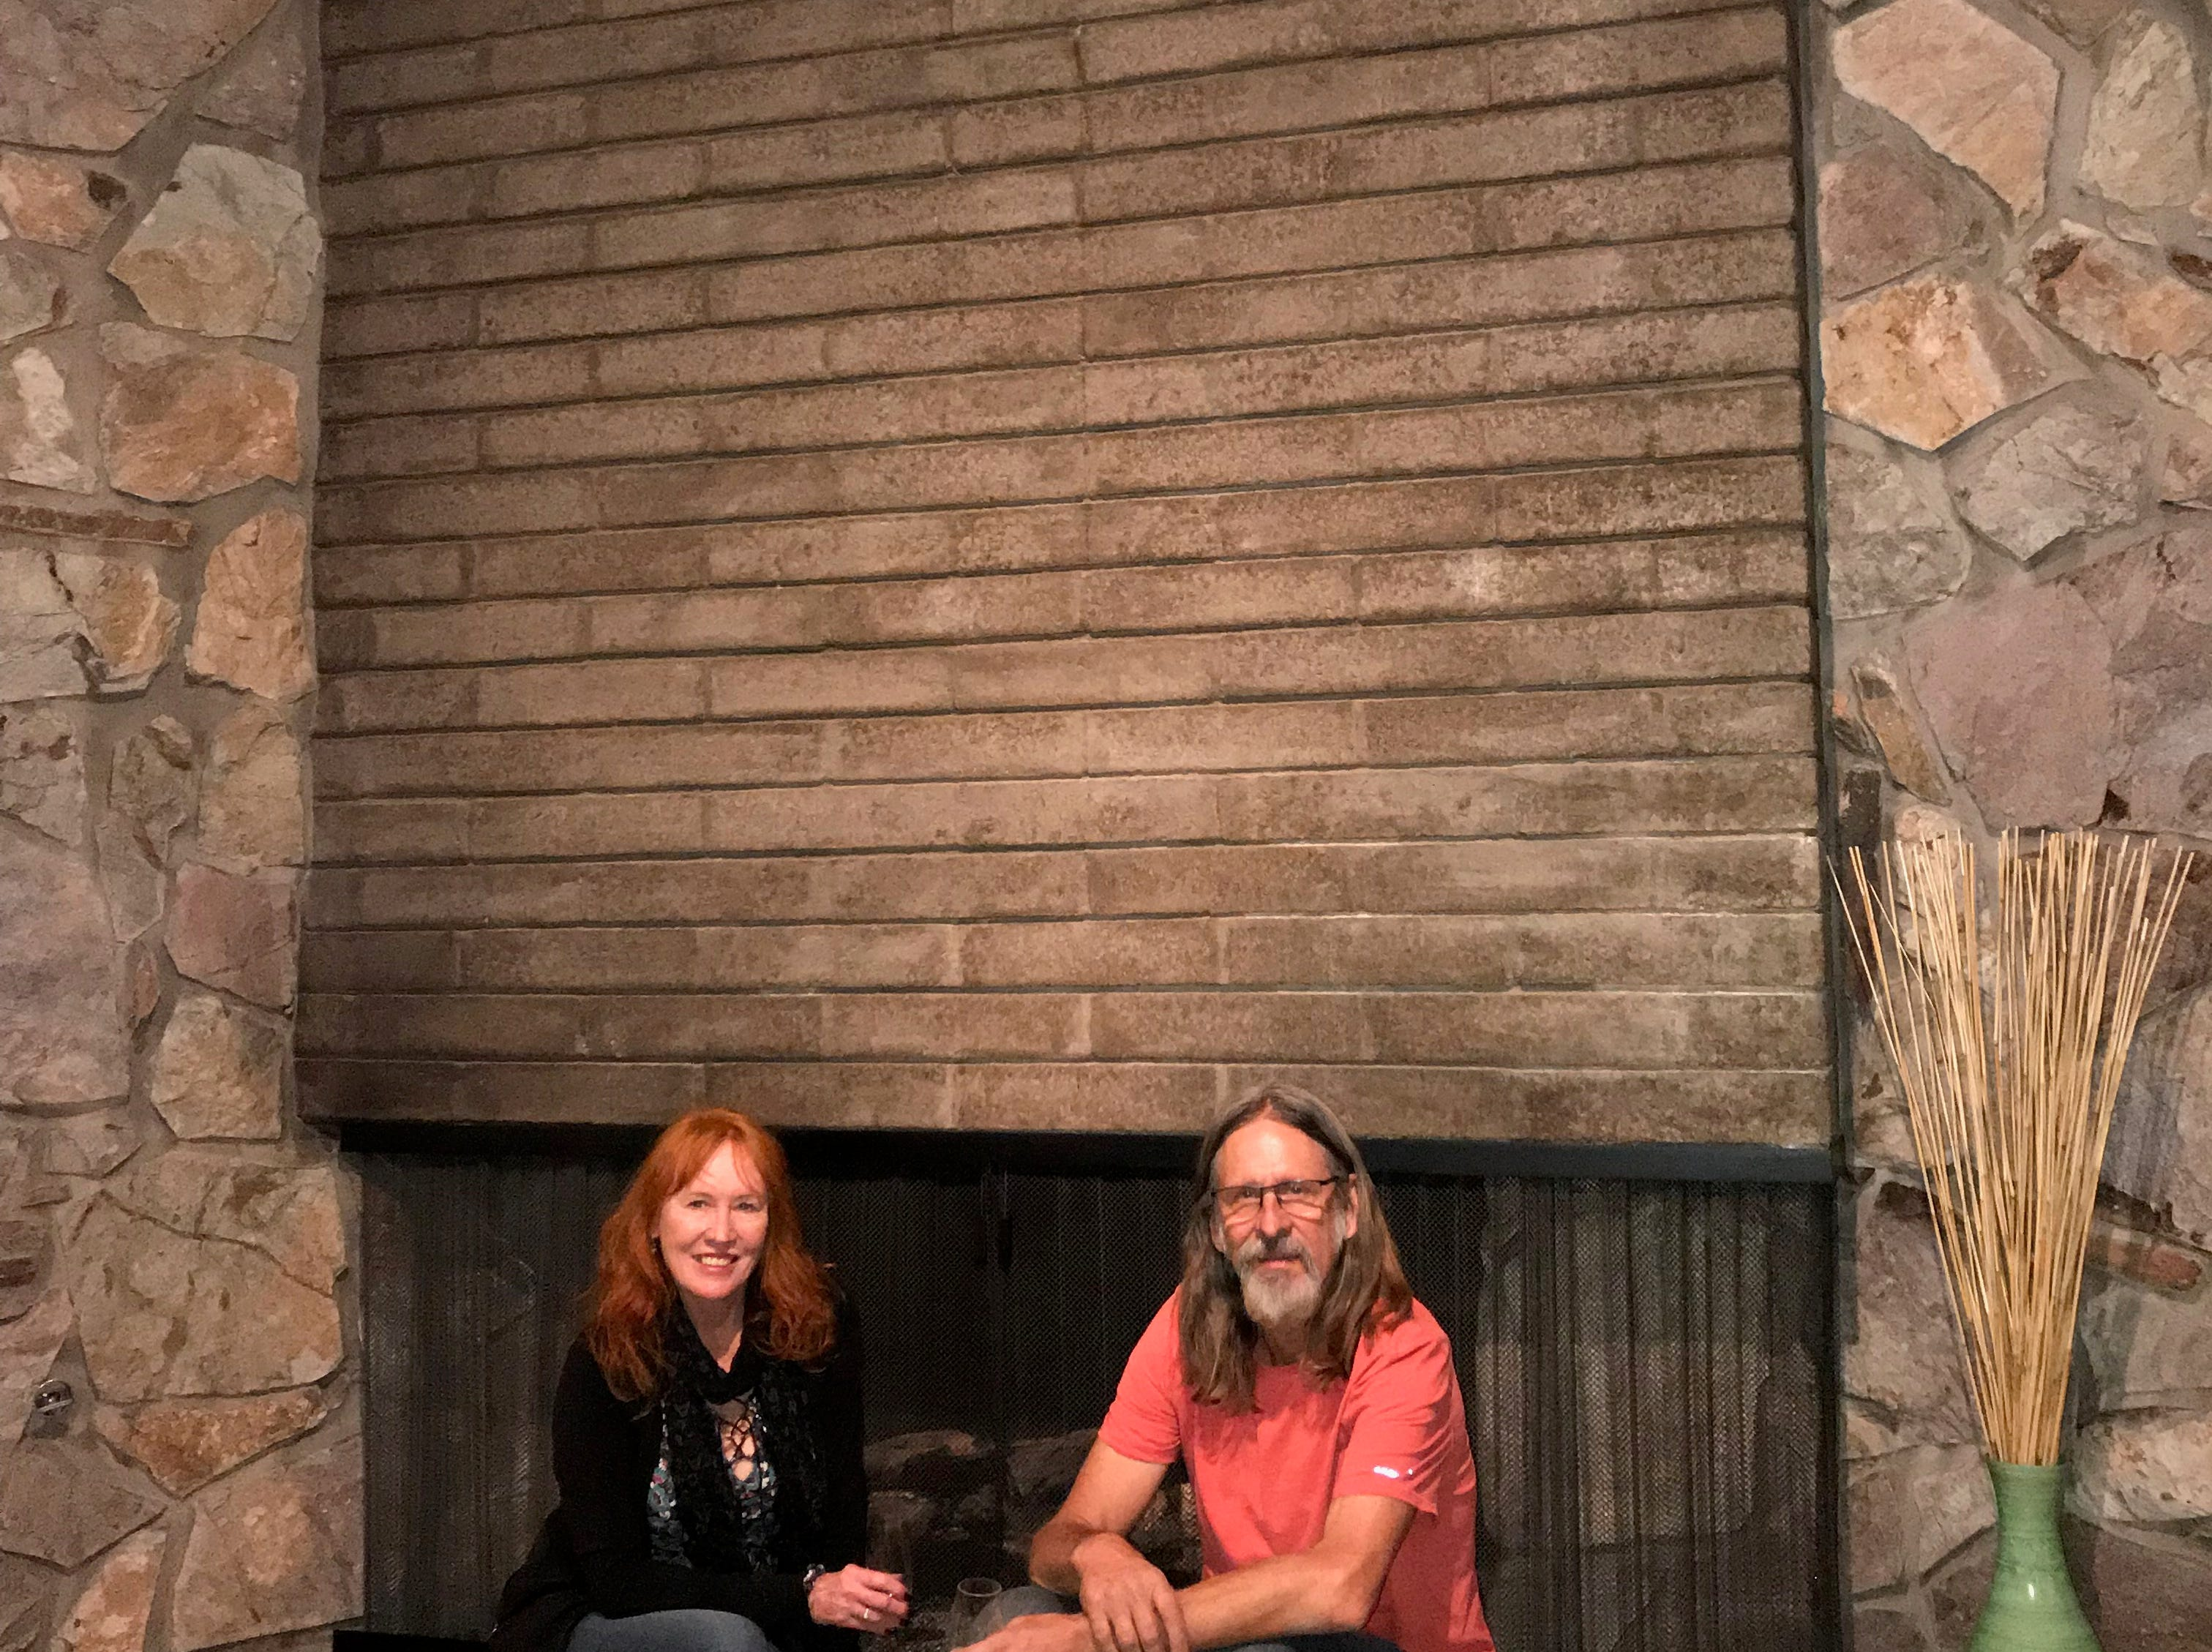 Owners Thomasina and William Burke sit in front of the brick and stonework of their fireplace.